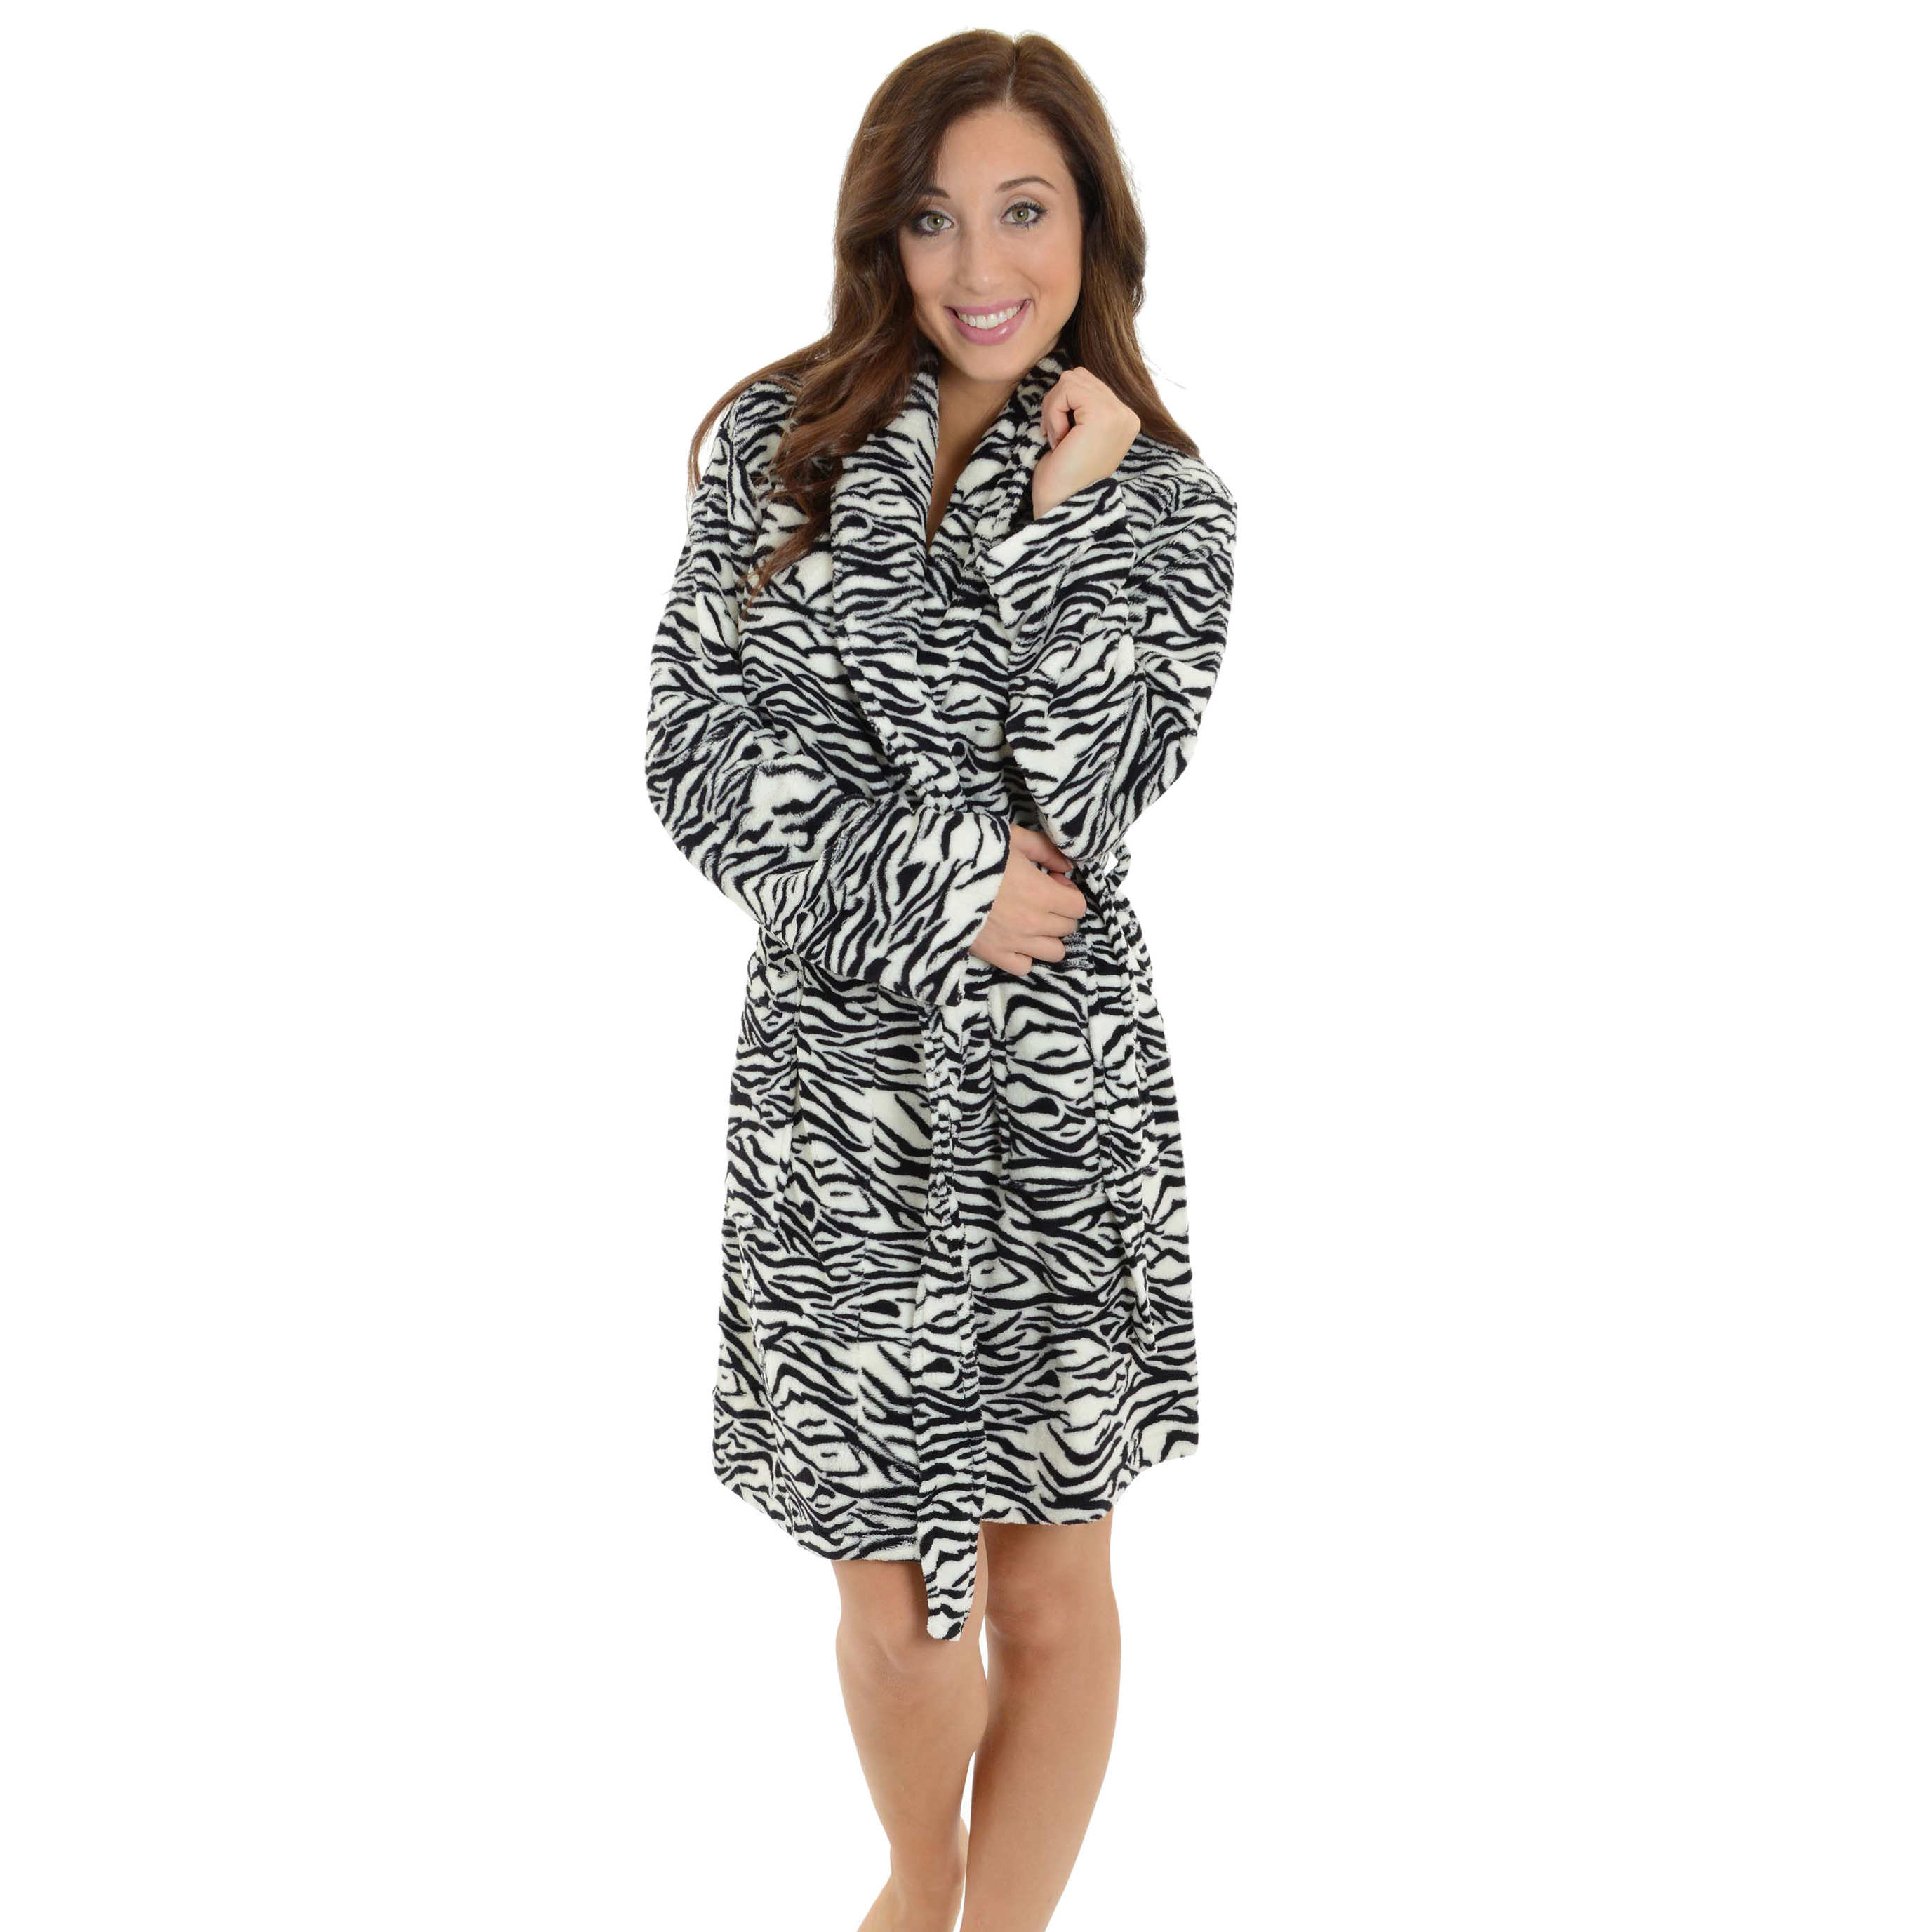 Totaly Pink - Short Fleece Robe Women Black and White Zebra Print Bathrobe  Animal Print Robe - Walmart.com 9c60def7a